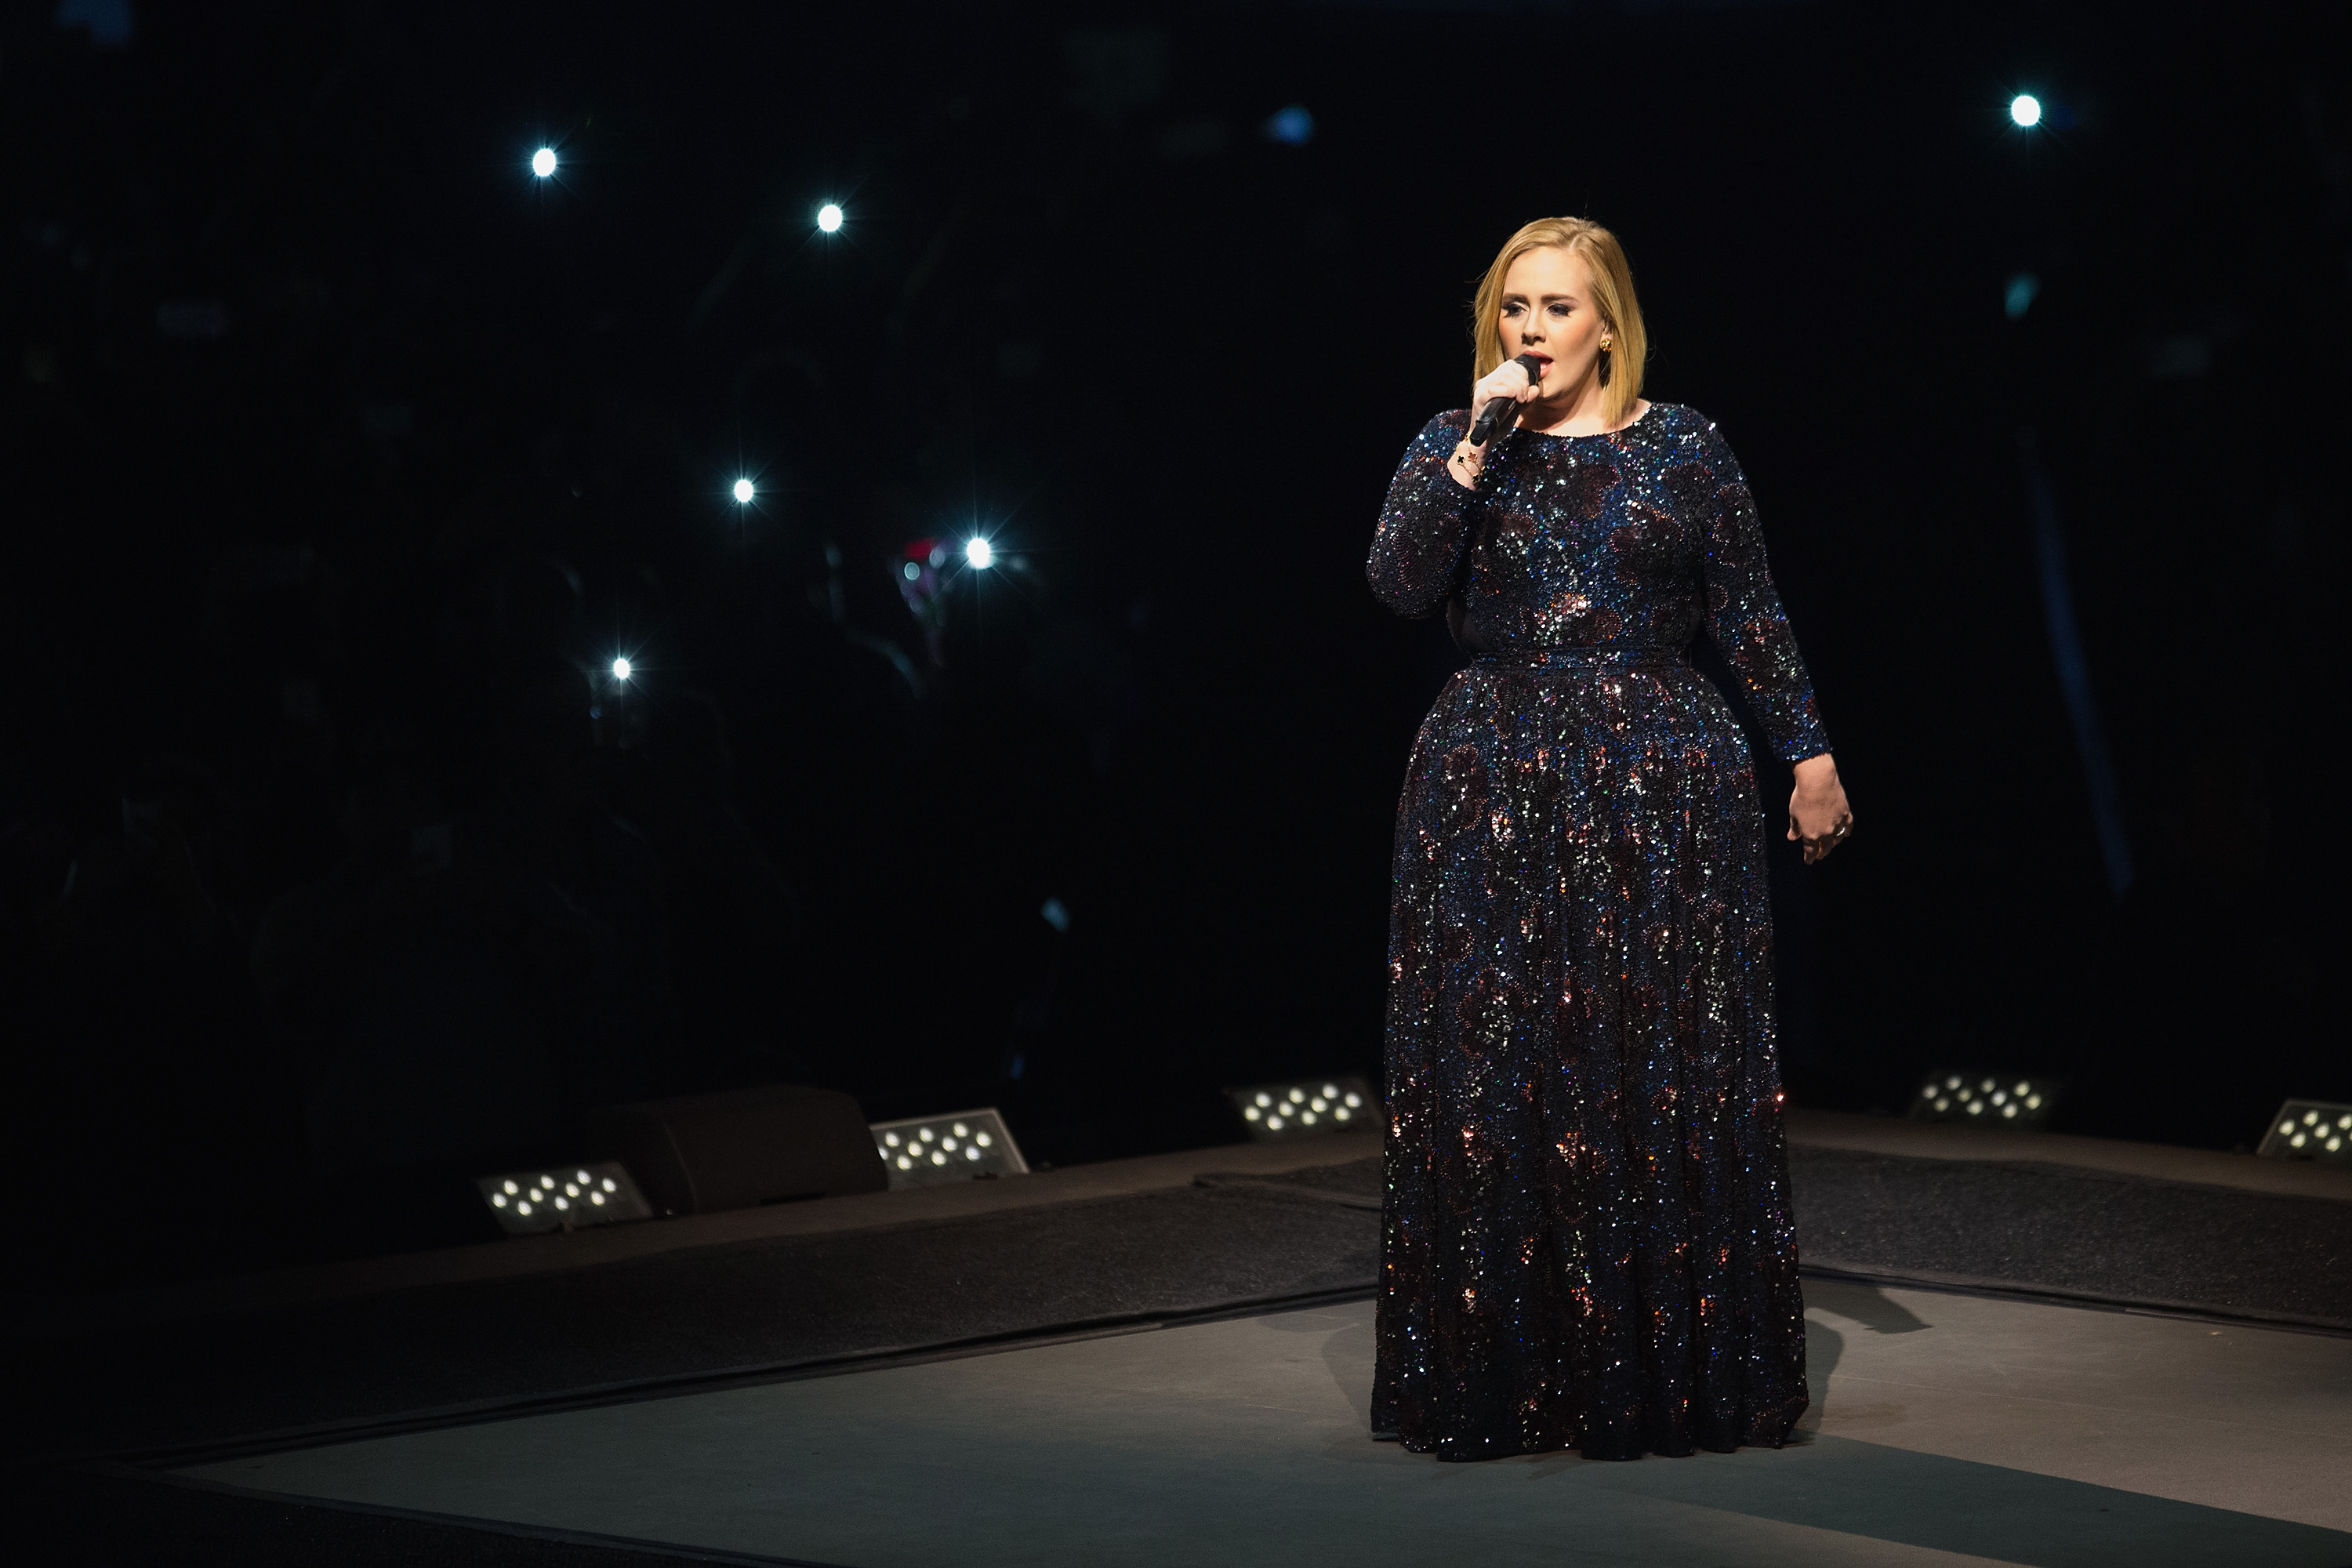 Adele Live 2016 In Mexico City